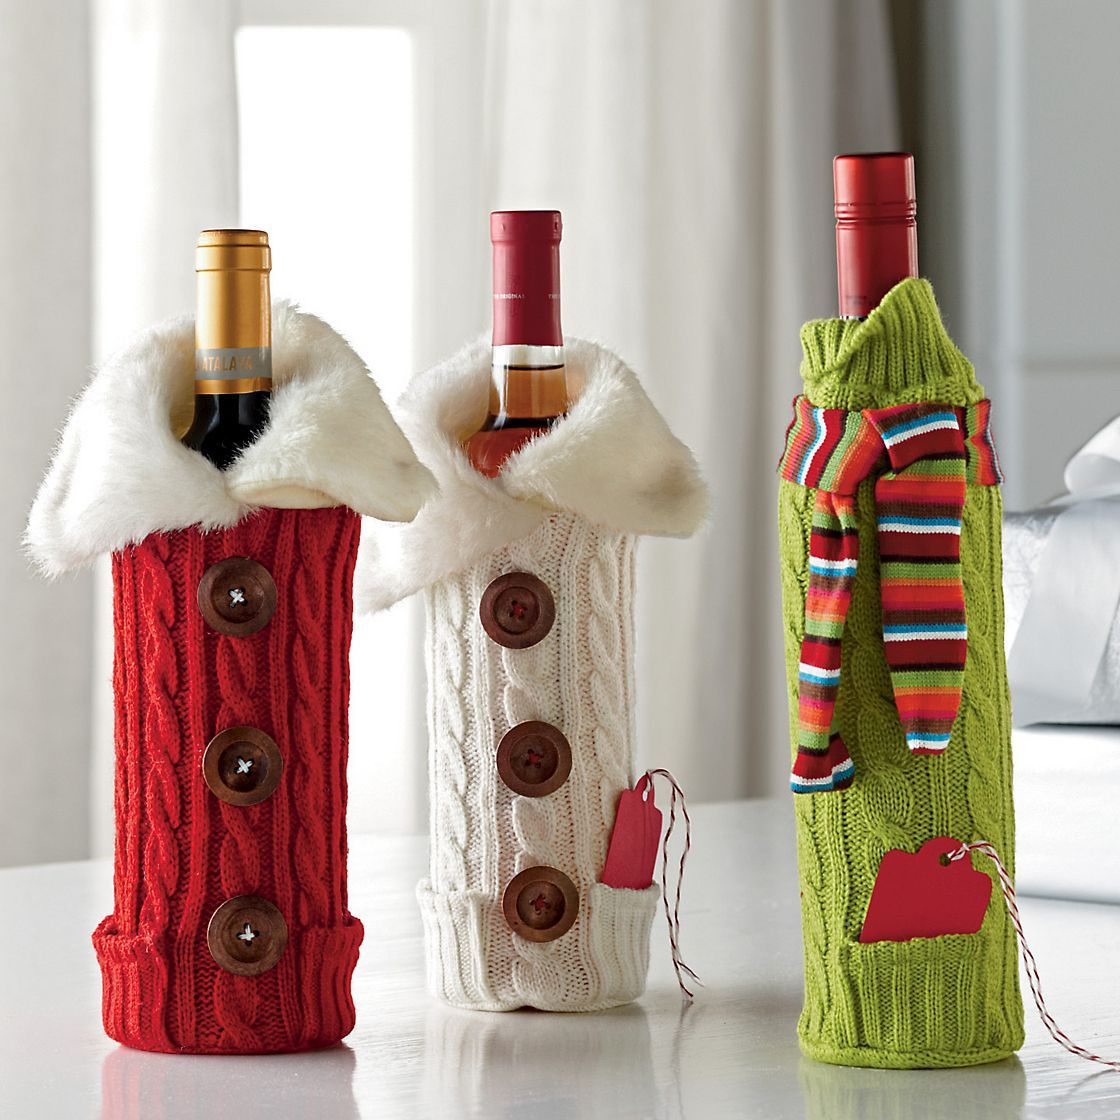 Wine Bottle Covers Red Button Fur Ivory Button Fur Green Scarf The Company Store Bottle Crafts Wine Bottle Covers Christmas Wine